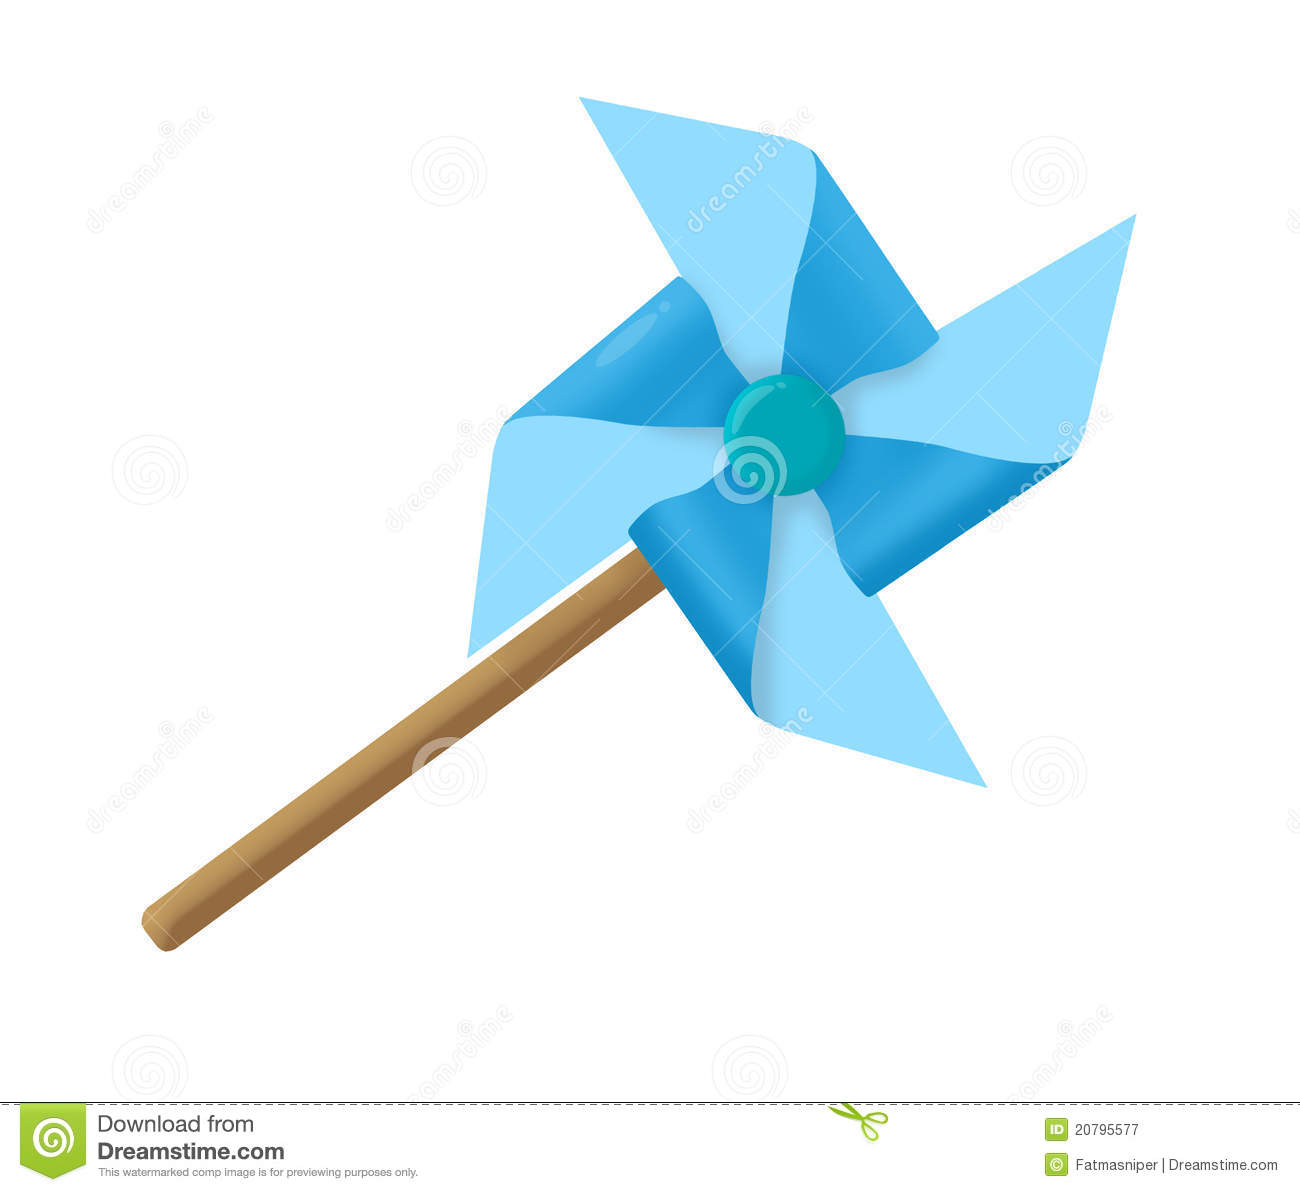 Windmill Paper Royalty Free Stock Photography - Image: 20795577